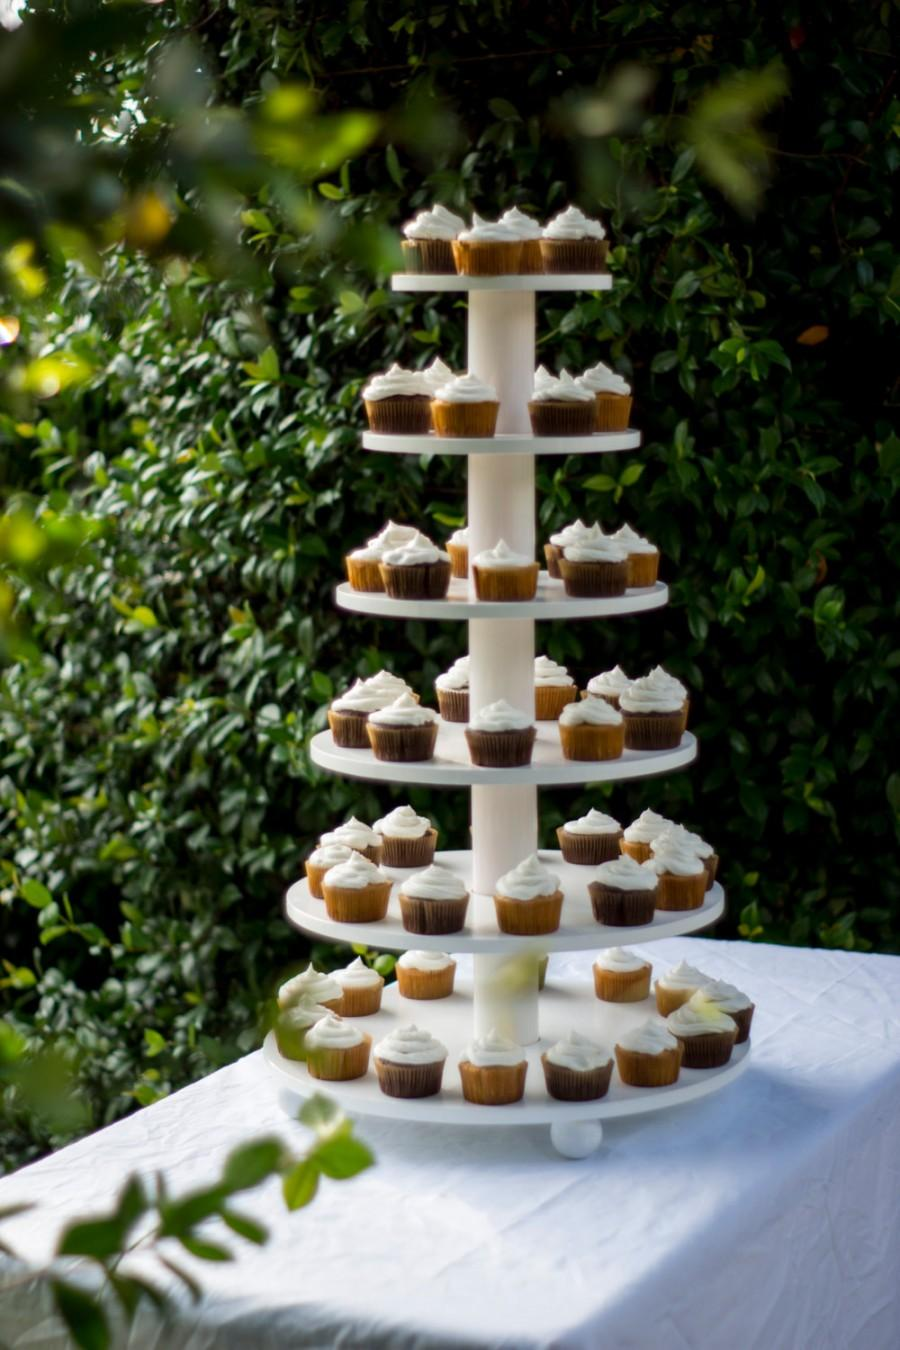 Hochzeit - Cupcake Stand. White and Elegant,  Holds 100